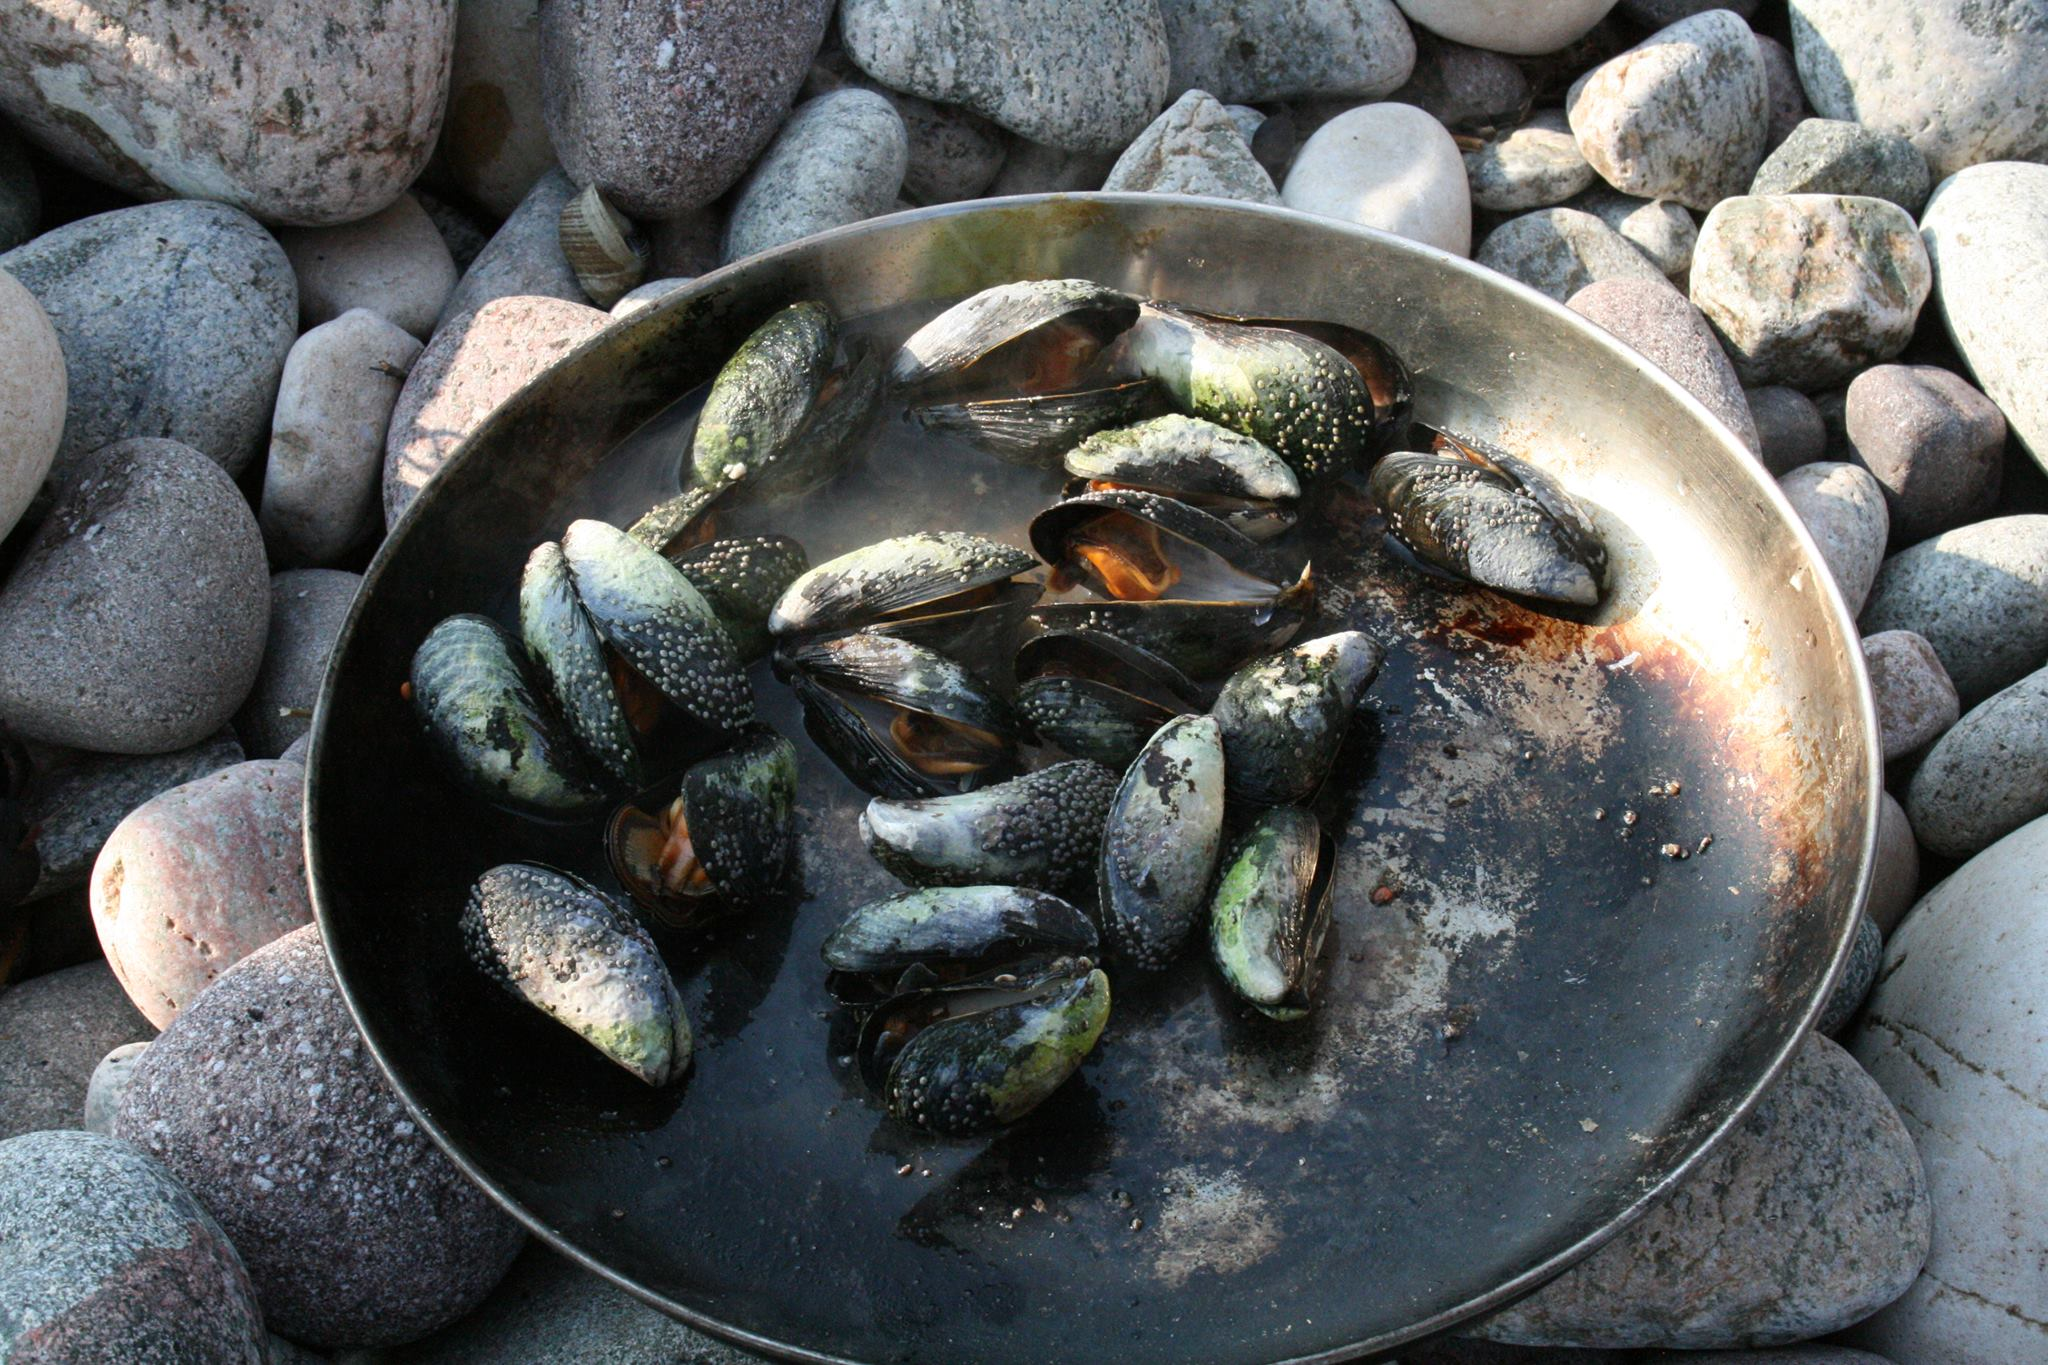 Mussells foraged wild cooking shore